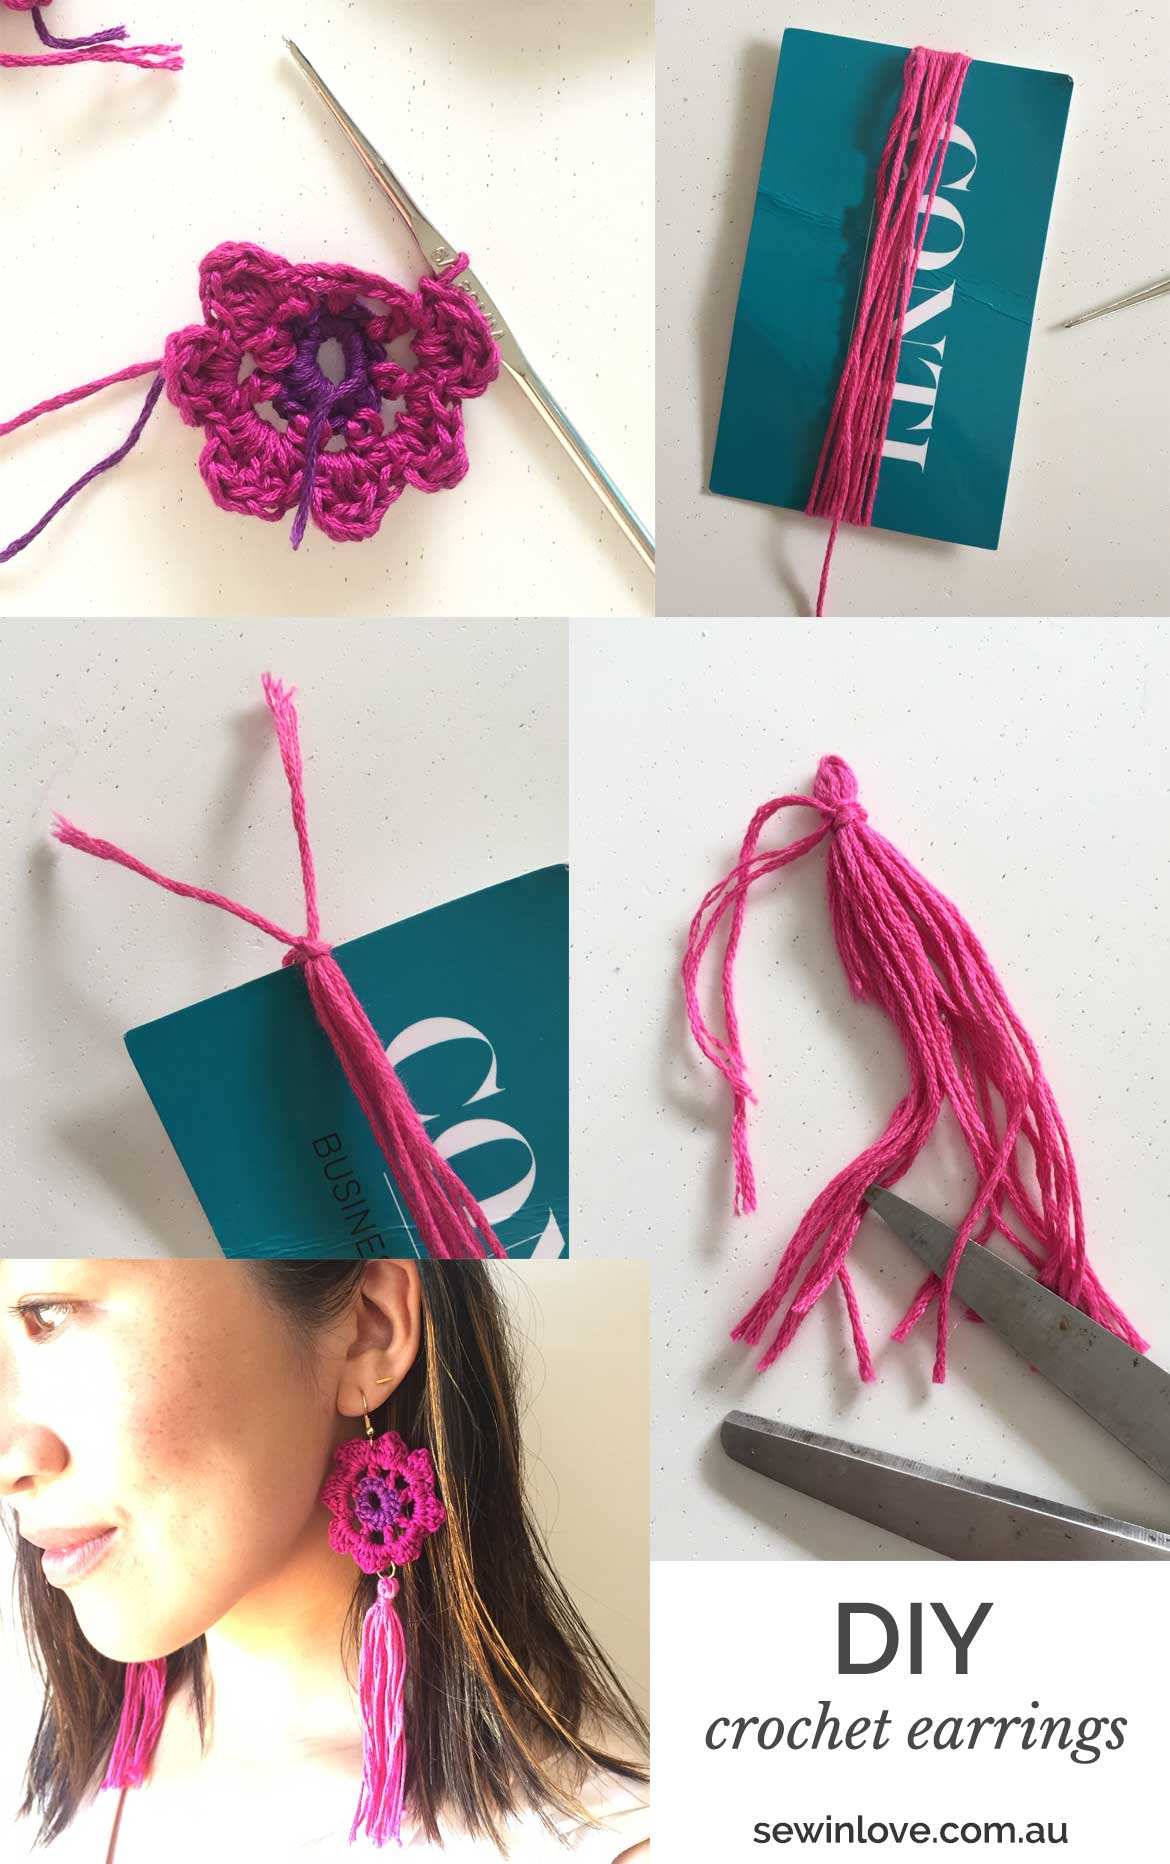 Easy Crochet Earrings Pattern | Crochet and tassels are the perfect match for these easy to make boho earrings.